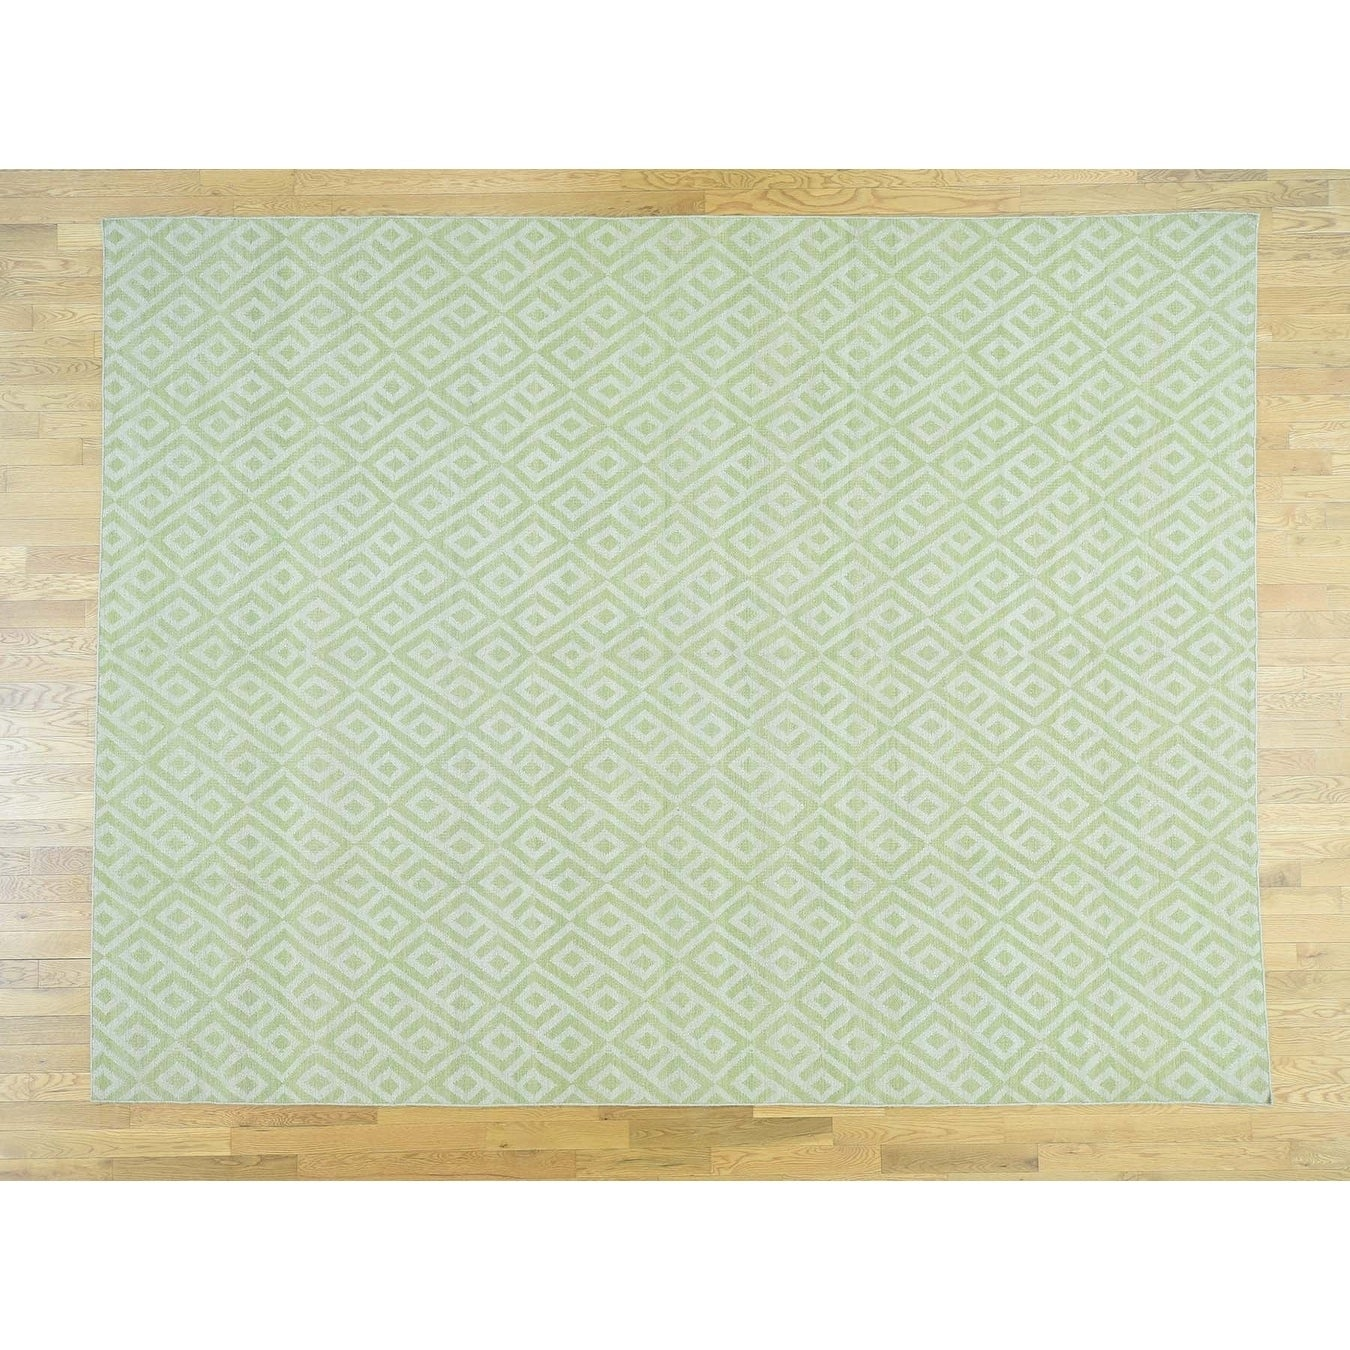 Hand Knotted Ivory Flat Weave with Wool Oriental Rug - 10 x 14